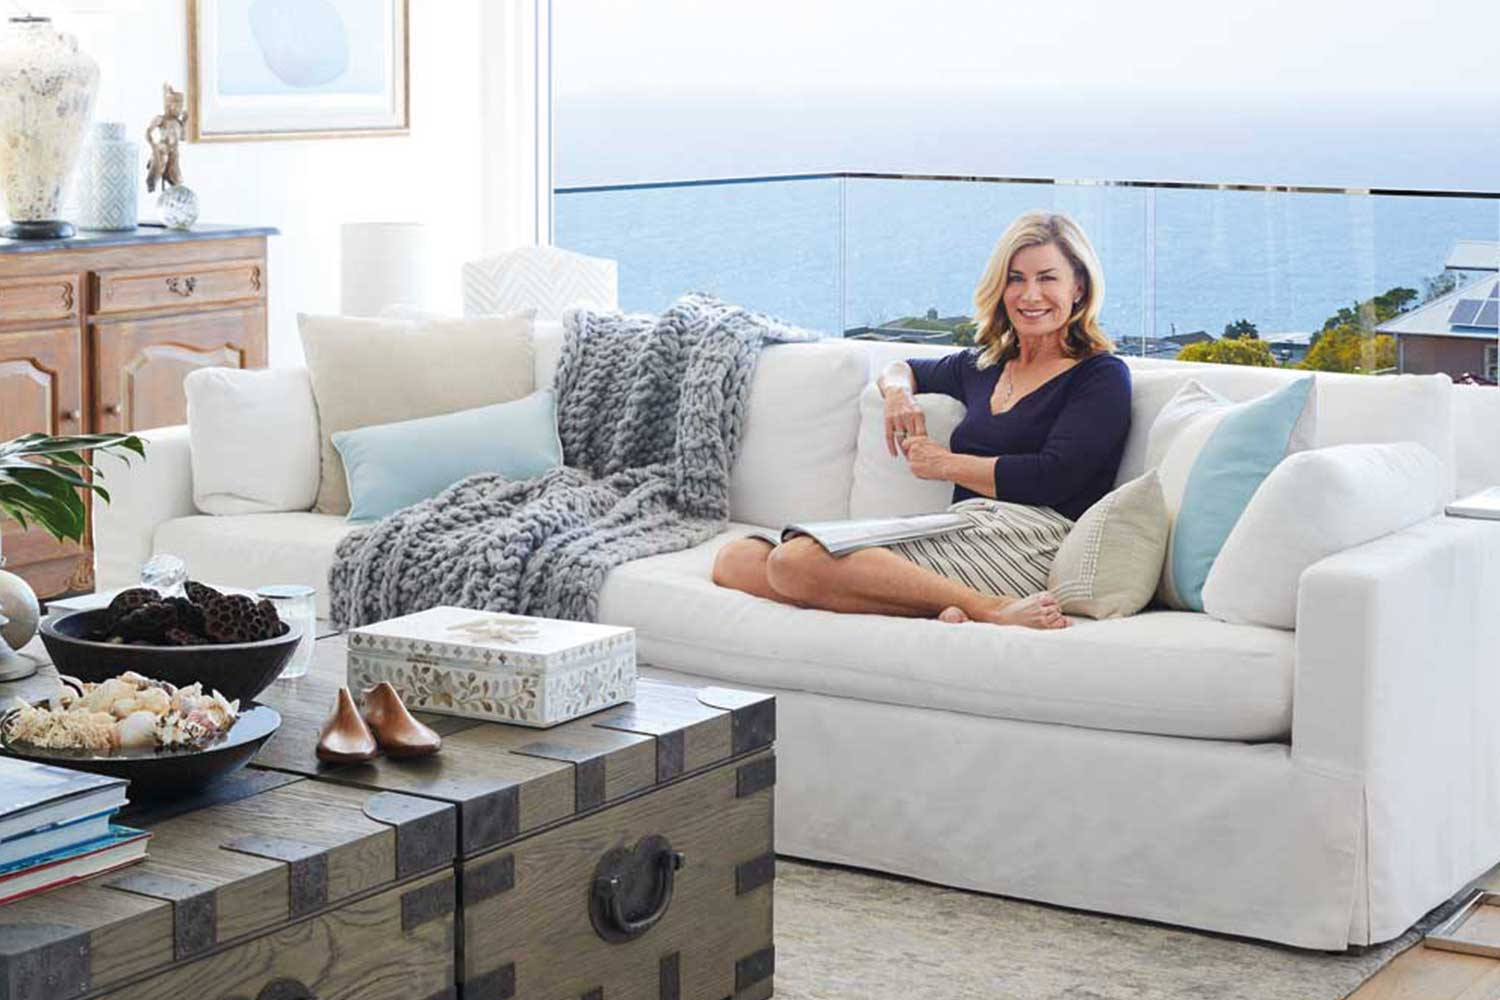 A tour of Deborah Hutton's newly renovated Hamptons home